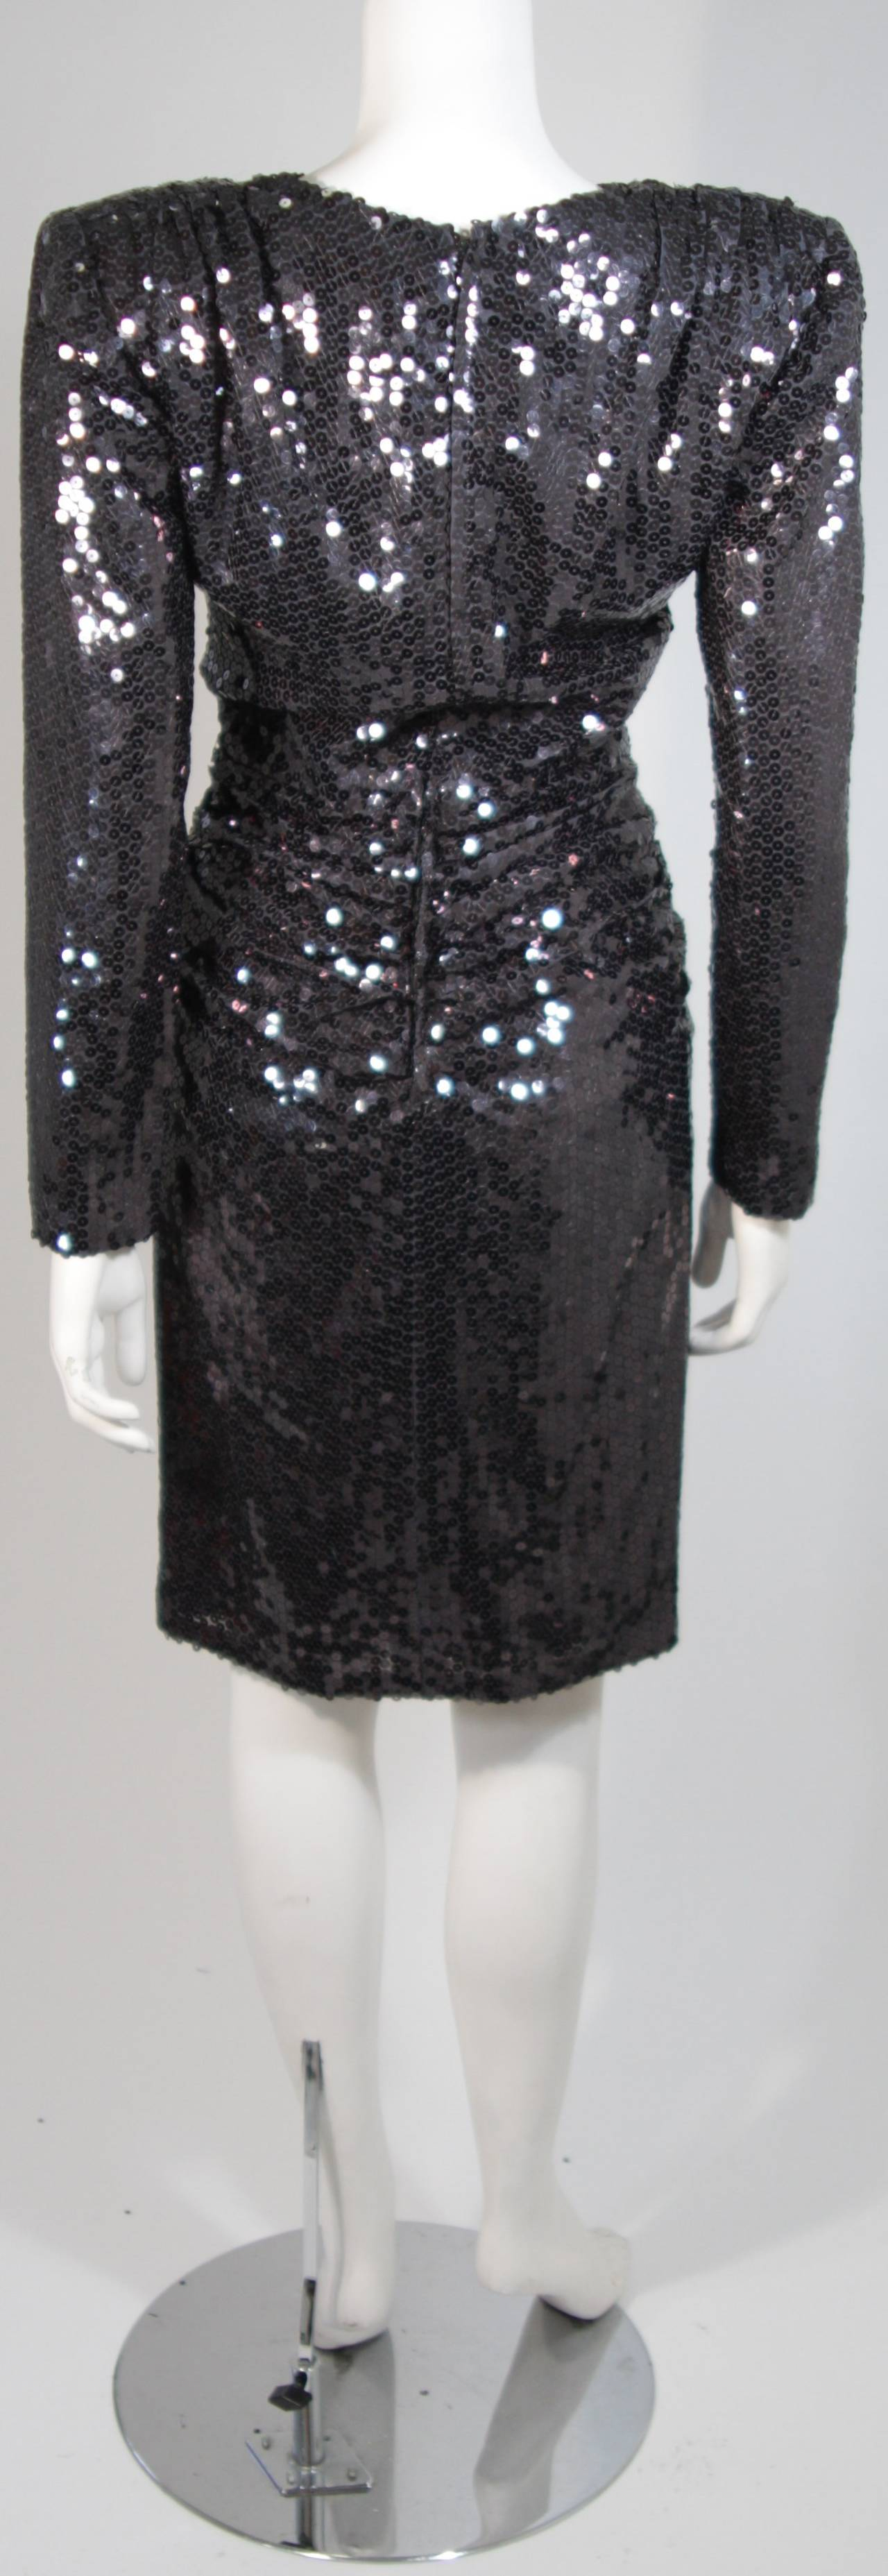 Vicky Tiel Black Iridescent Sequin Cocktail Dress Size 38 8